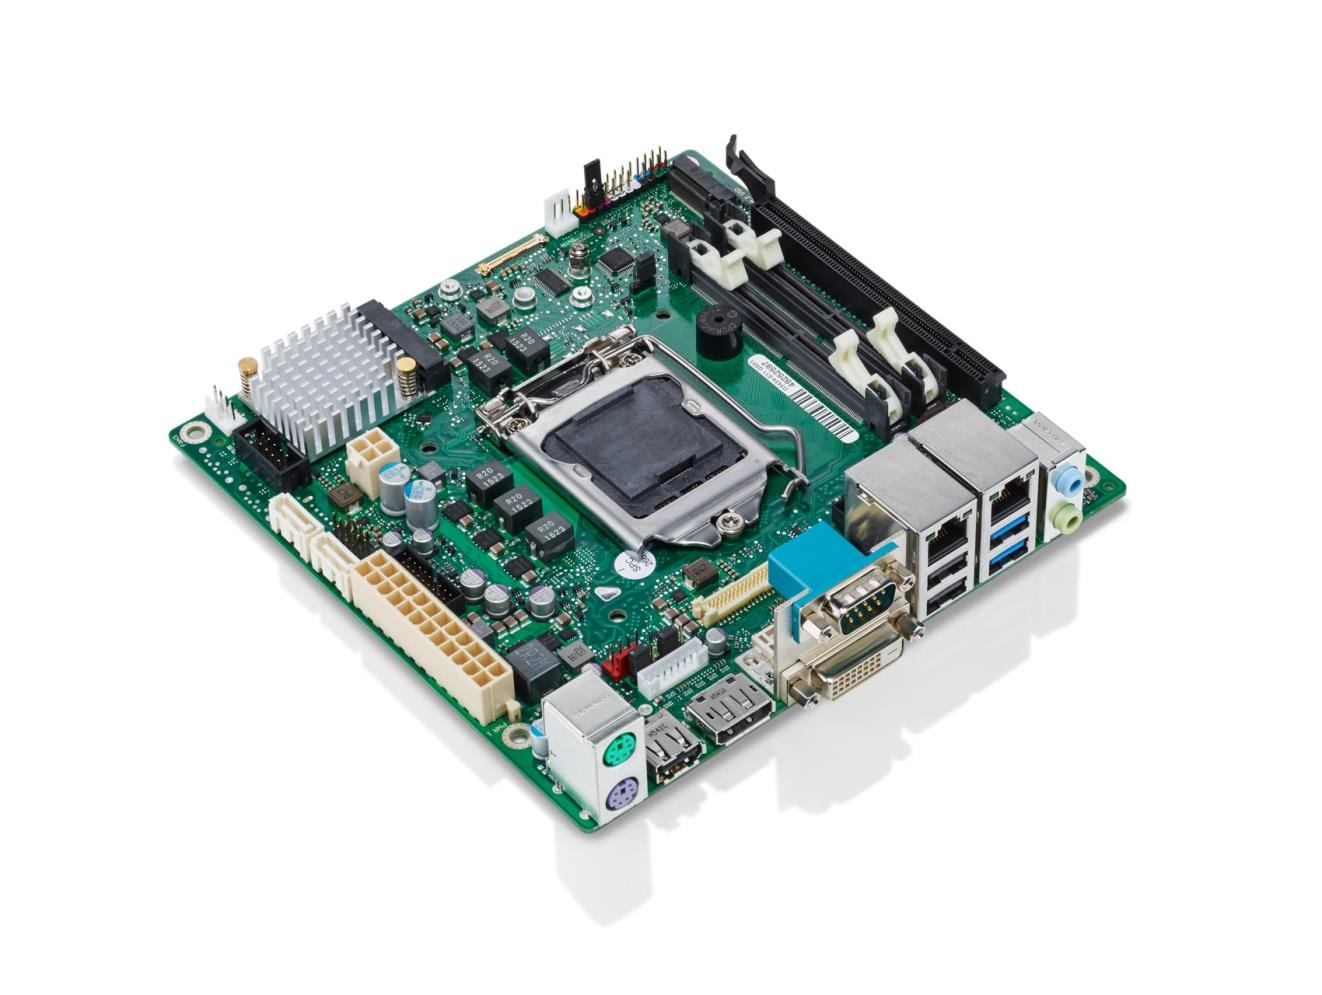 FUJITSU D3434-S22 INTEL H170 LGA 1151 (SOCKET H4) MINI ITX MOTHERBOARD